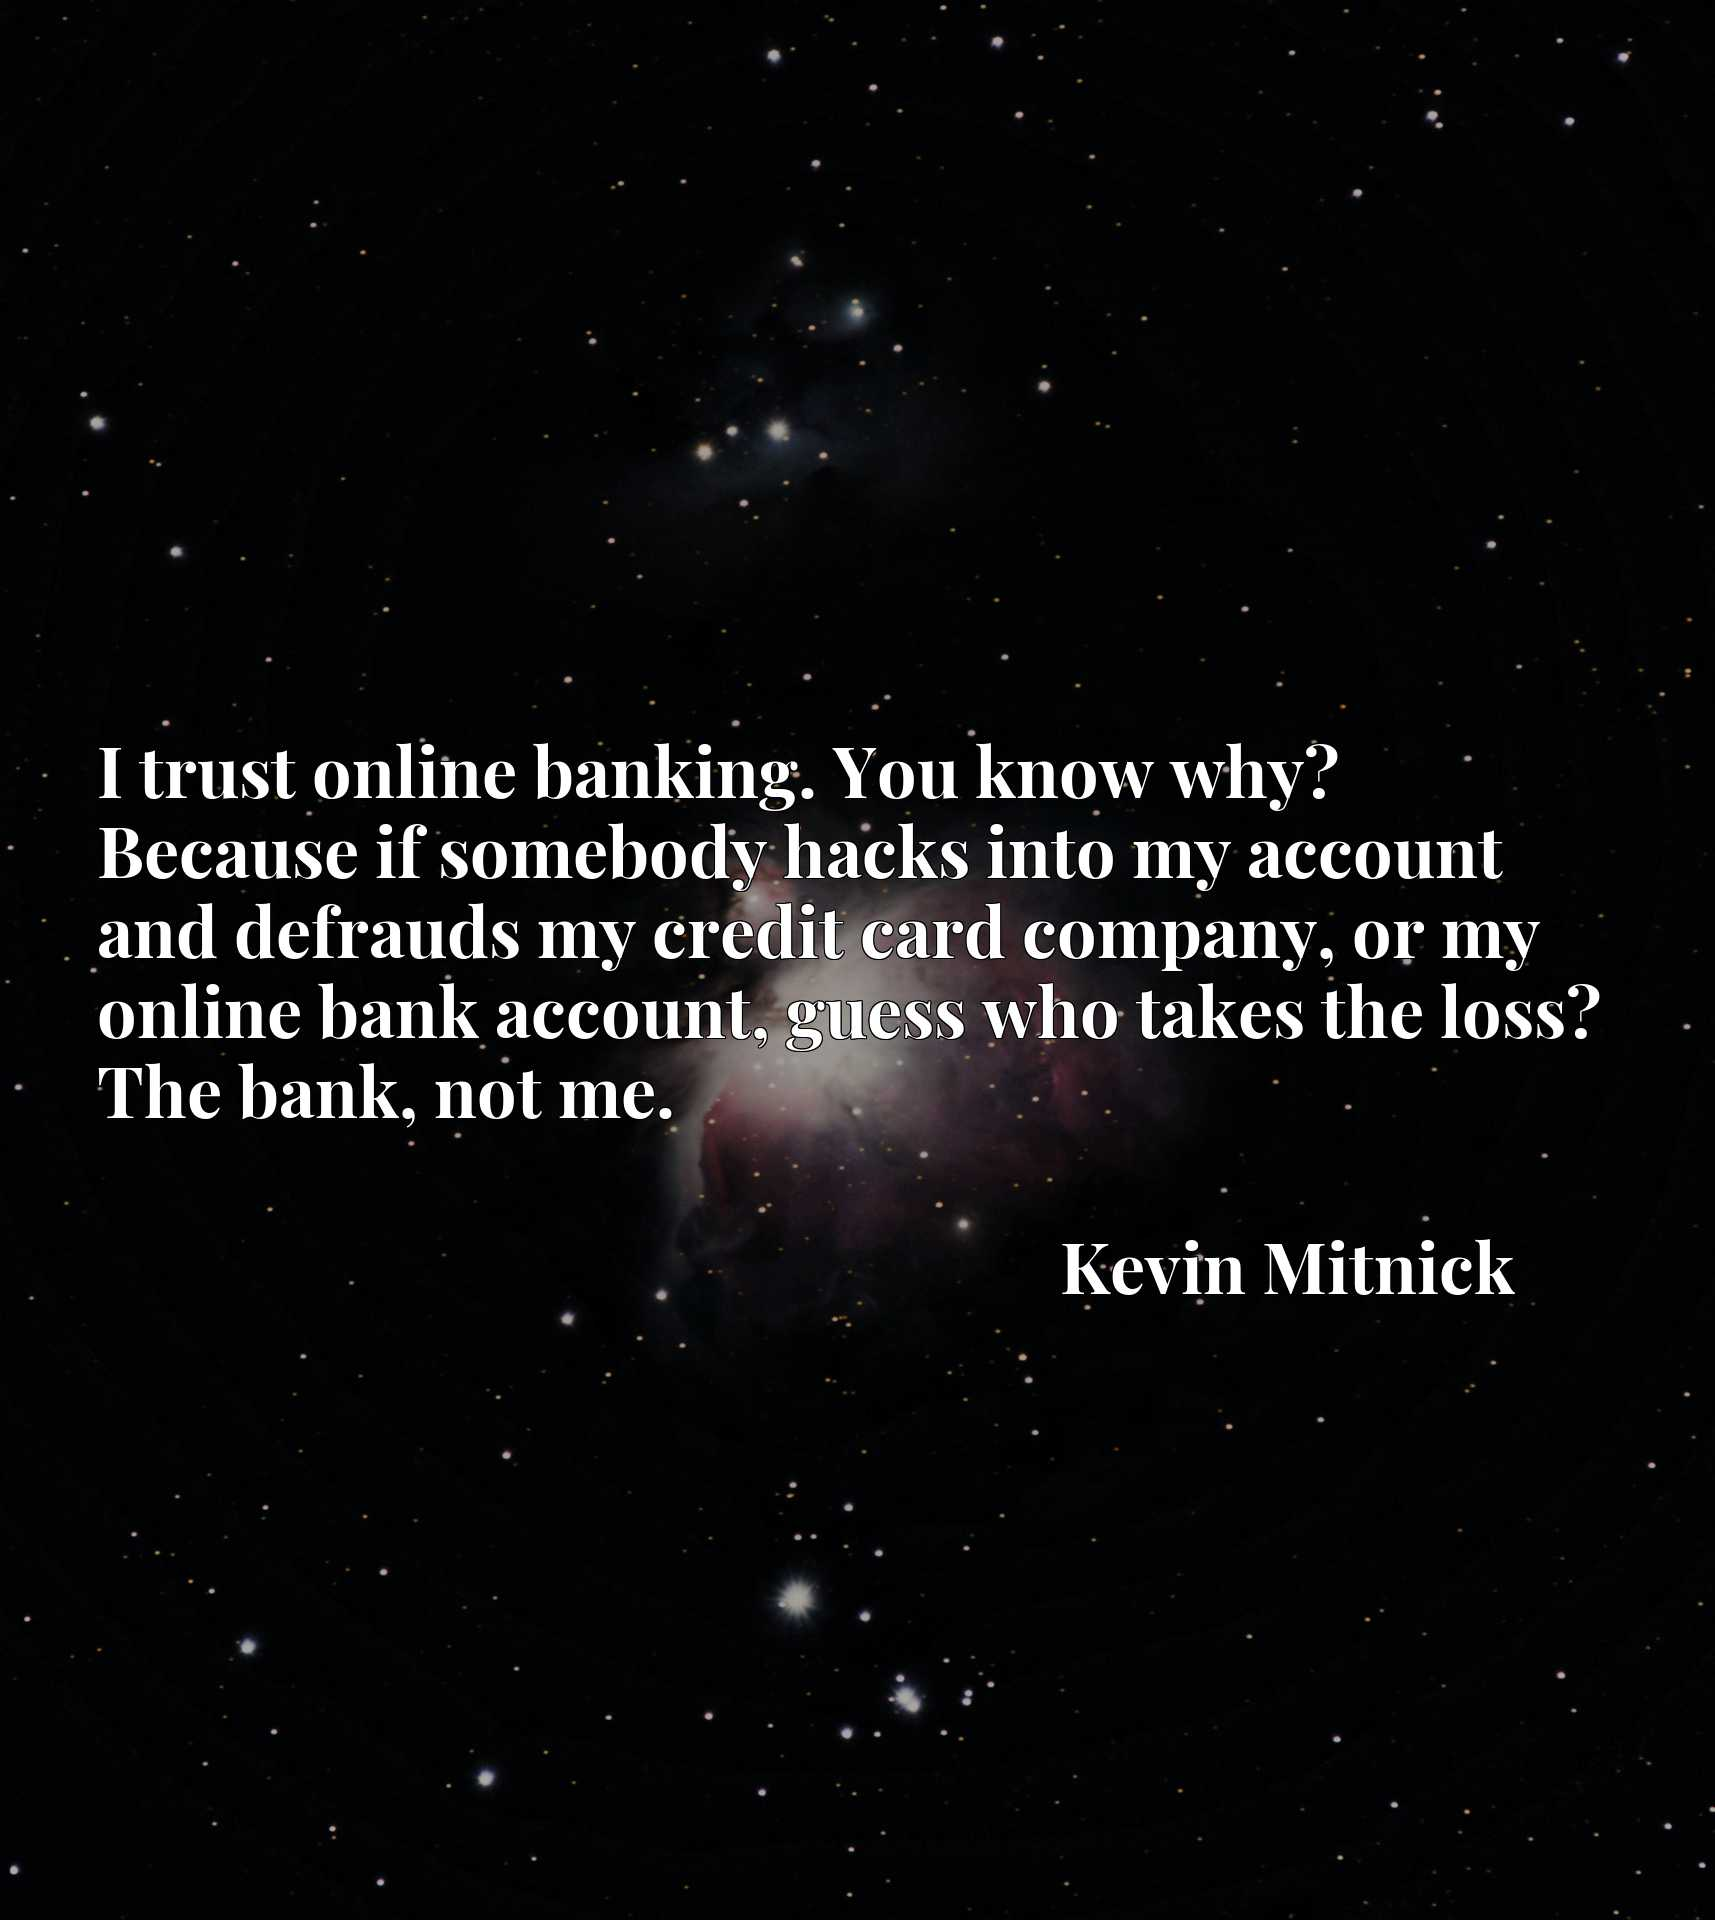 I trust online banking. You know why? Because if somebody hacks into my account and defrauds my credit card company, or my online bank account, guess who takes the loss? The bank, not me.